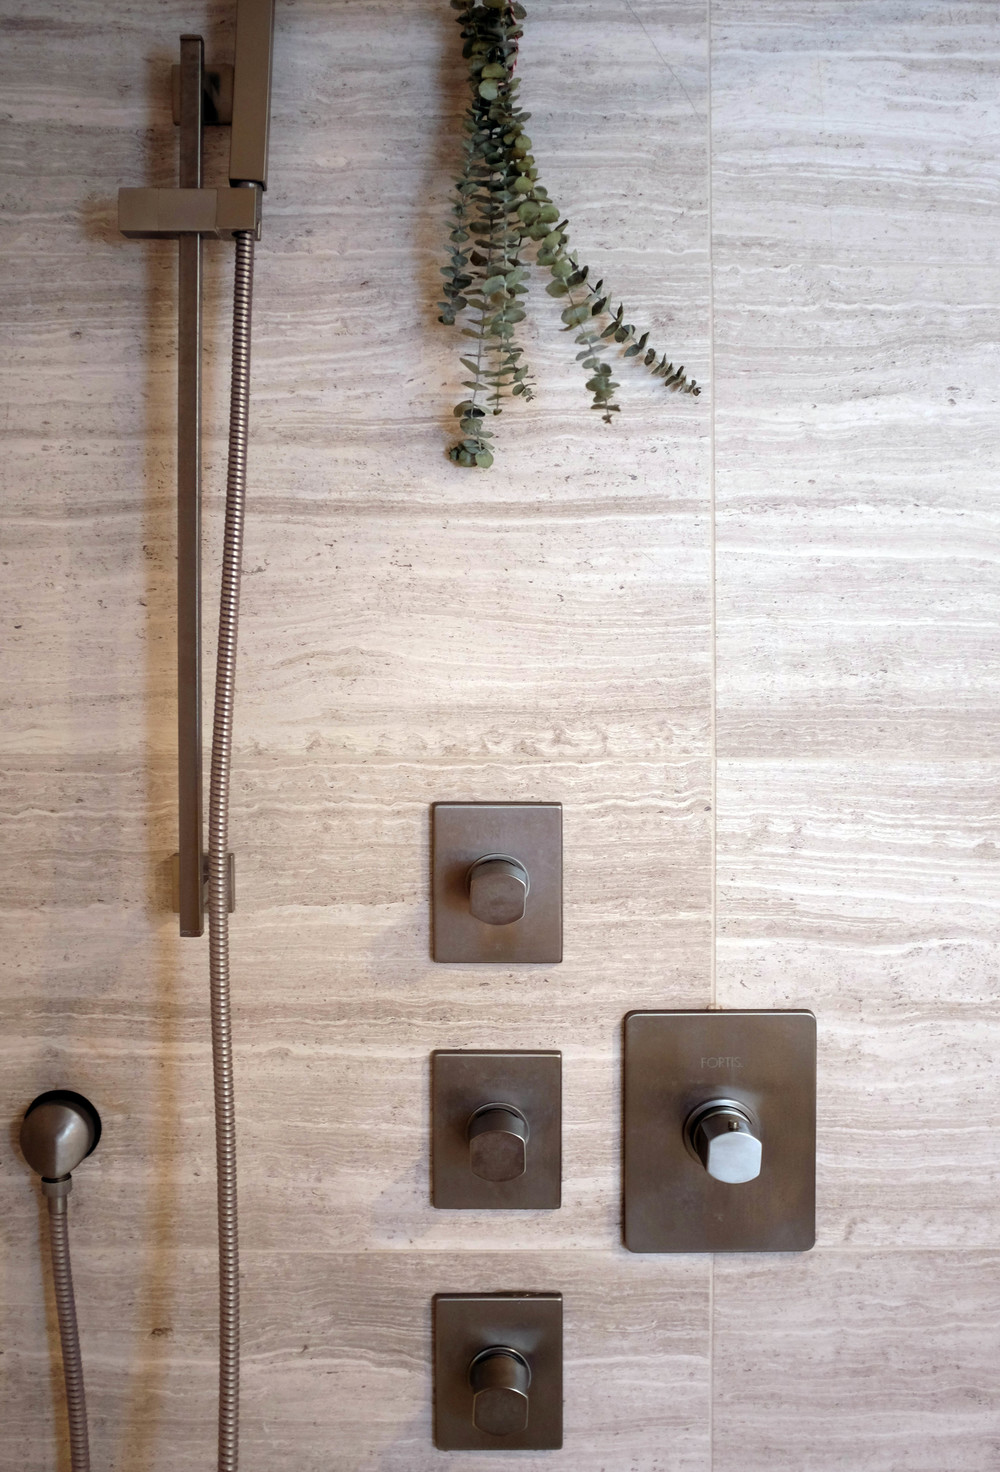 A detail of the Fortis fittings. As a side note, adding a bunch of fresh eucalyptus into your shower creates a wonderful spa experience as the aroma comes out with the steam. Also, it just looks pretty.